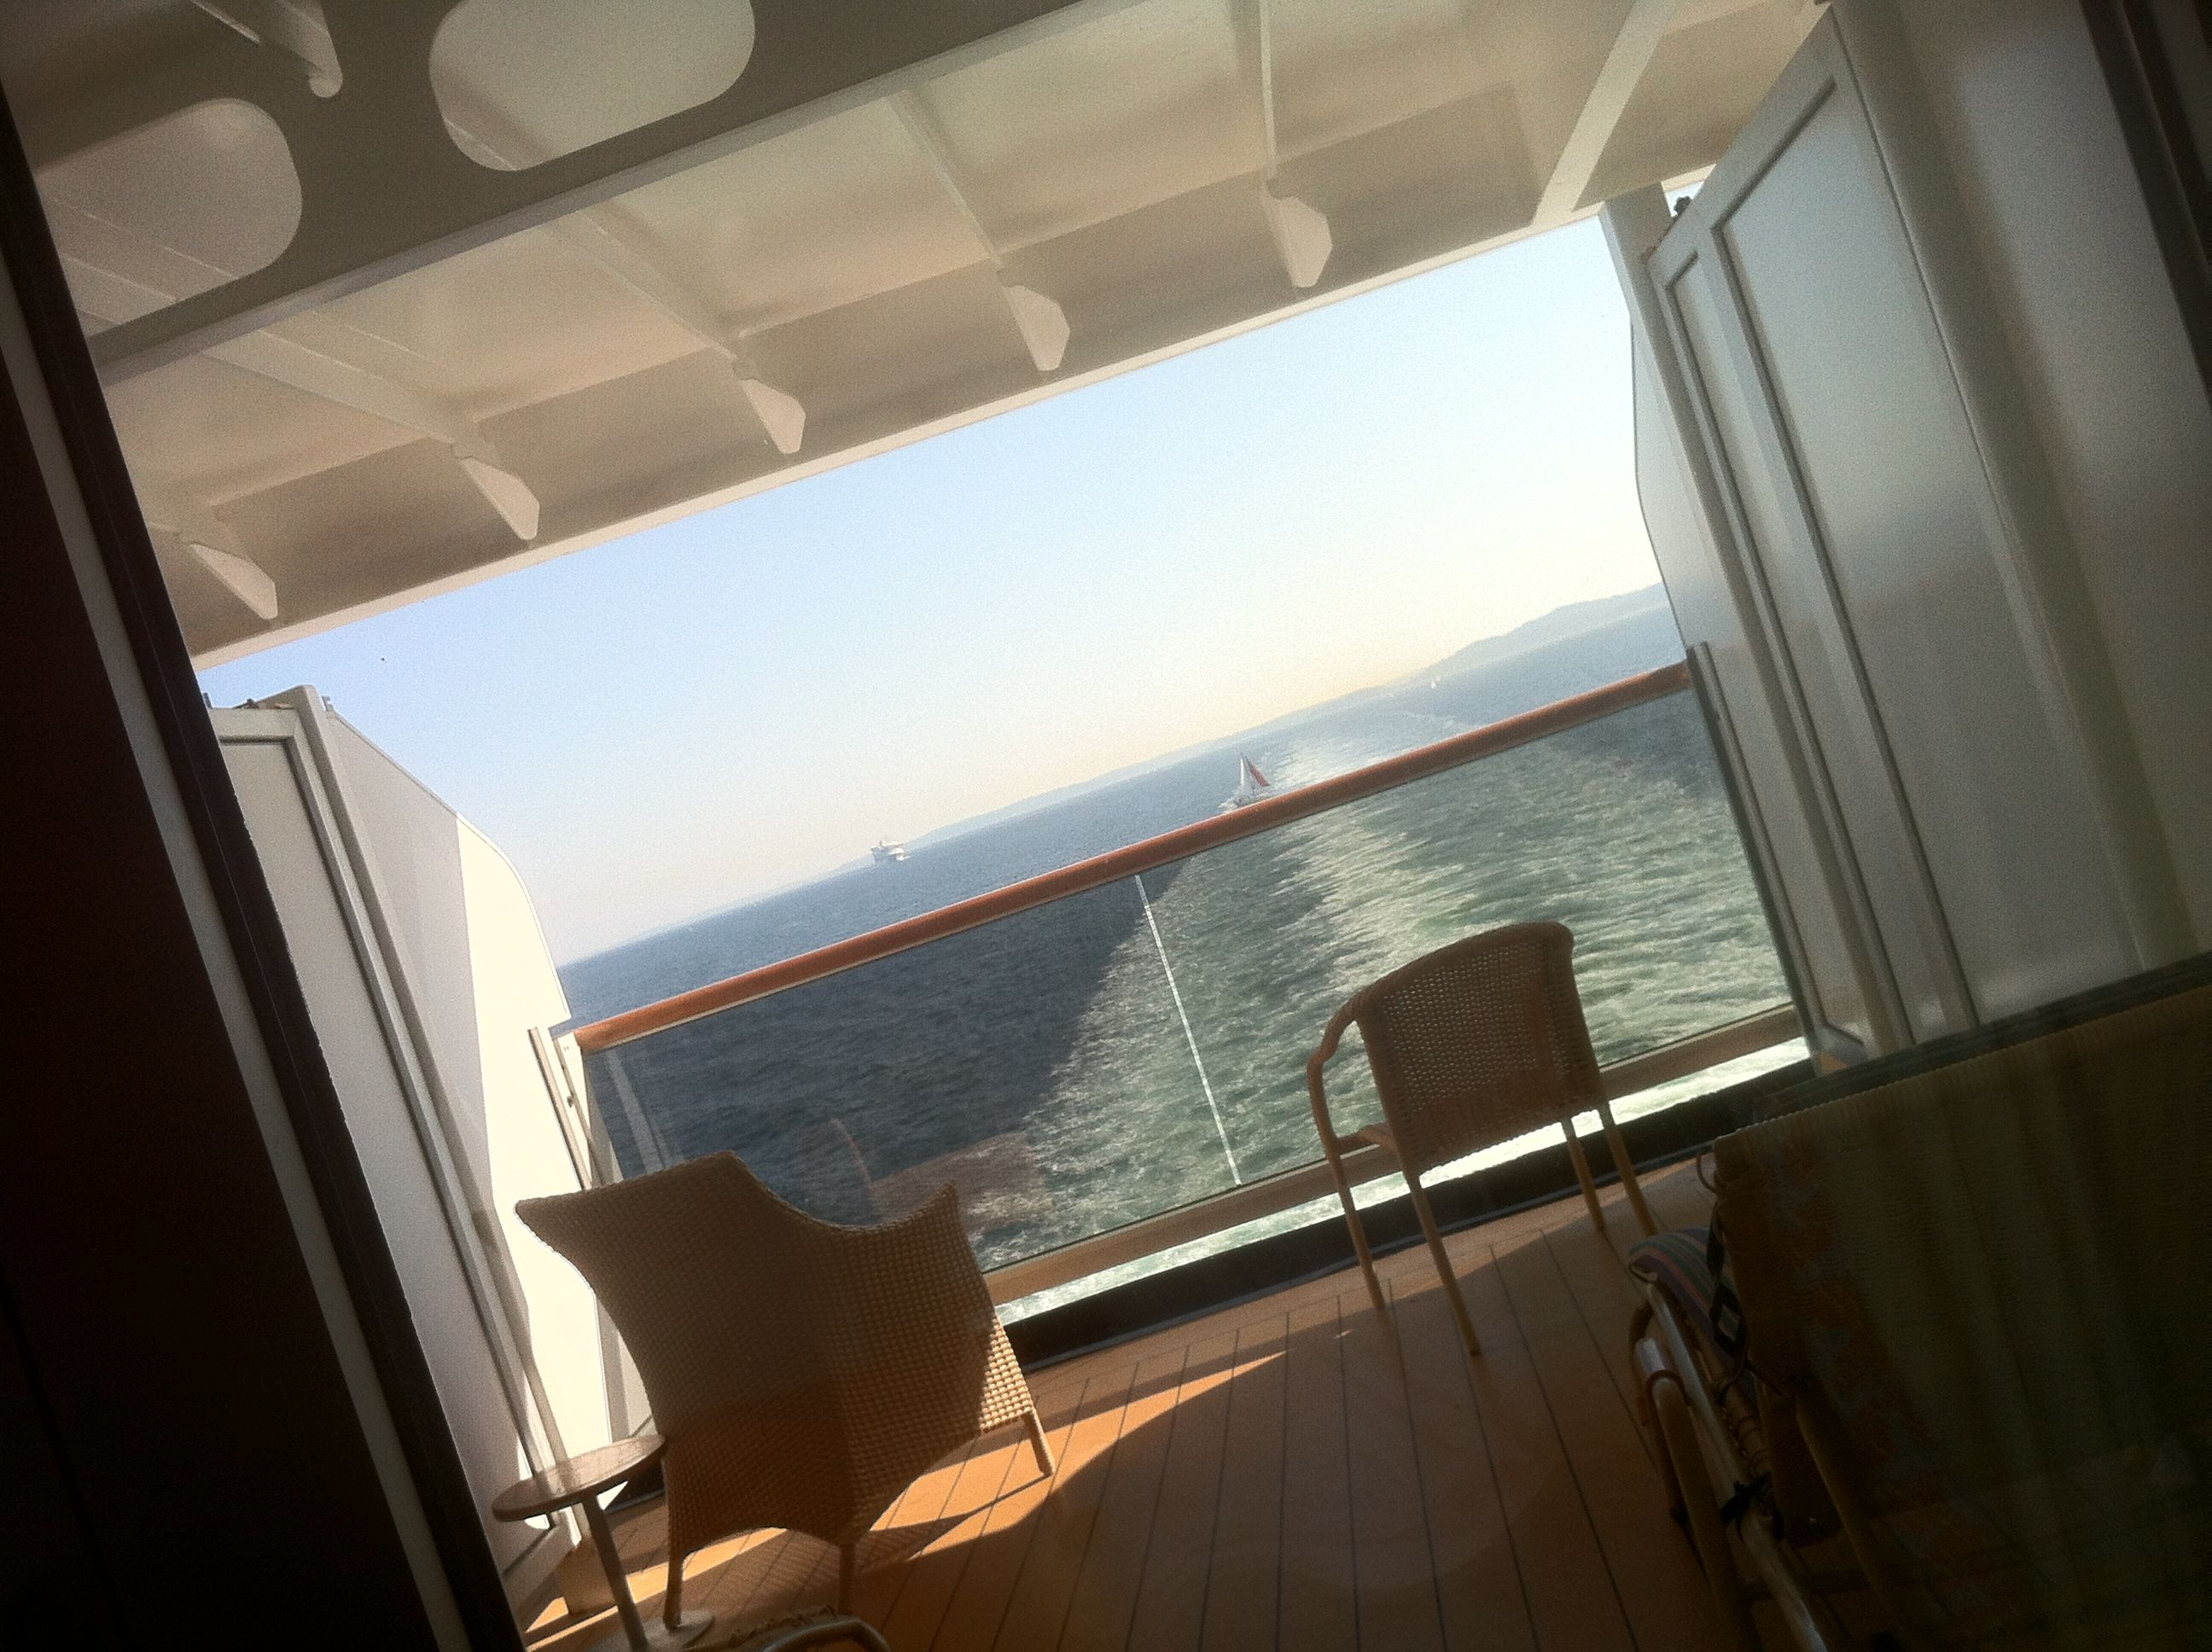 Pin by scott lara on holland america line pinterest for Balcony view on cruise